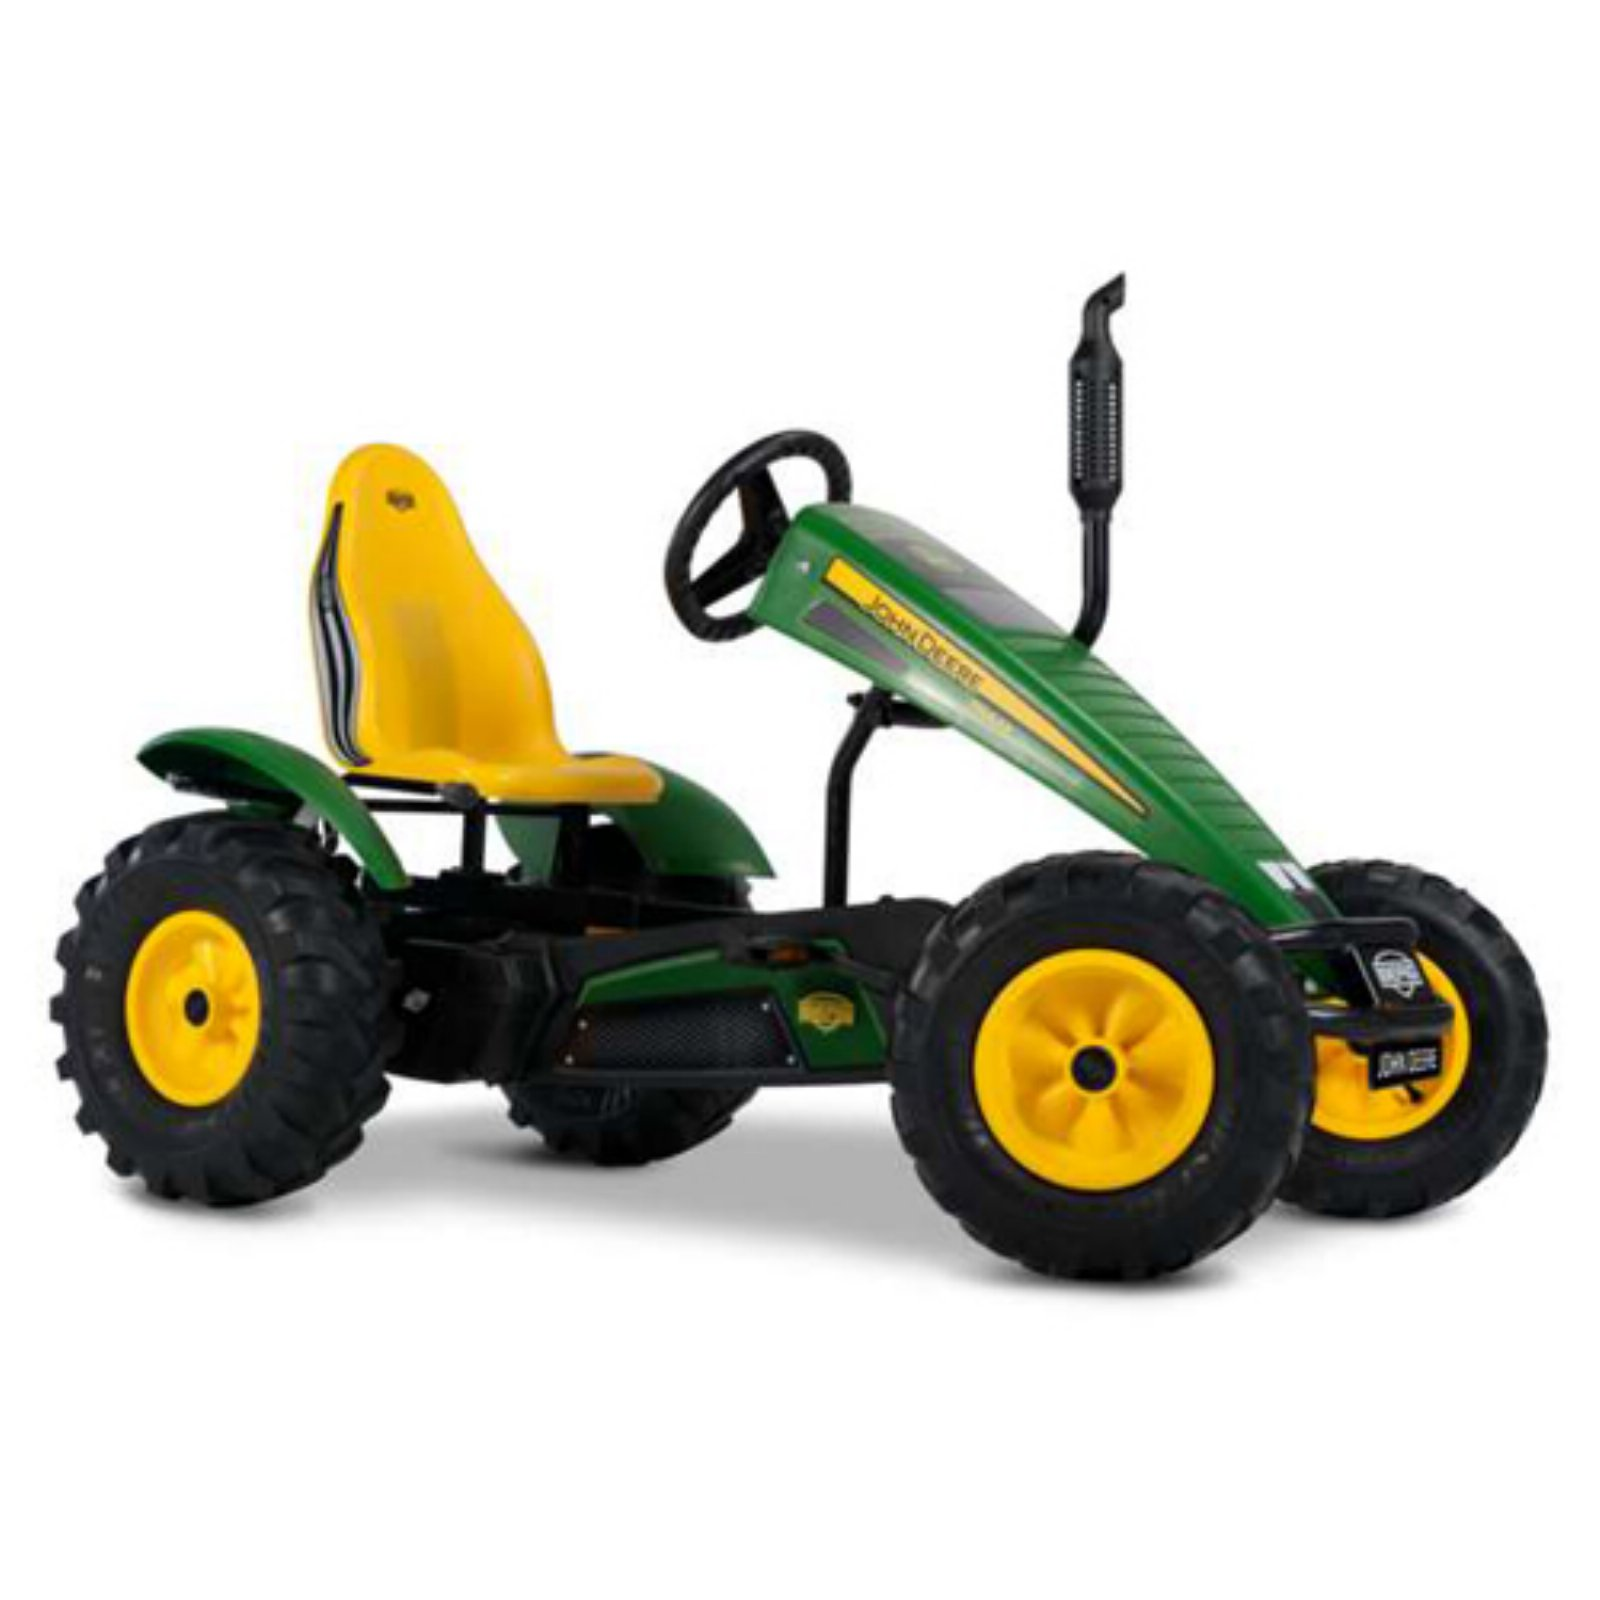 Berg USA John Deere BFR Pedal Go Kart Riding Toy